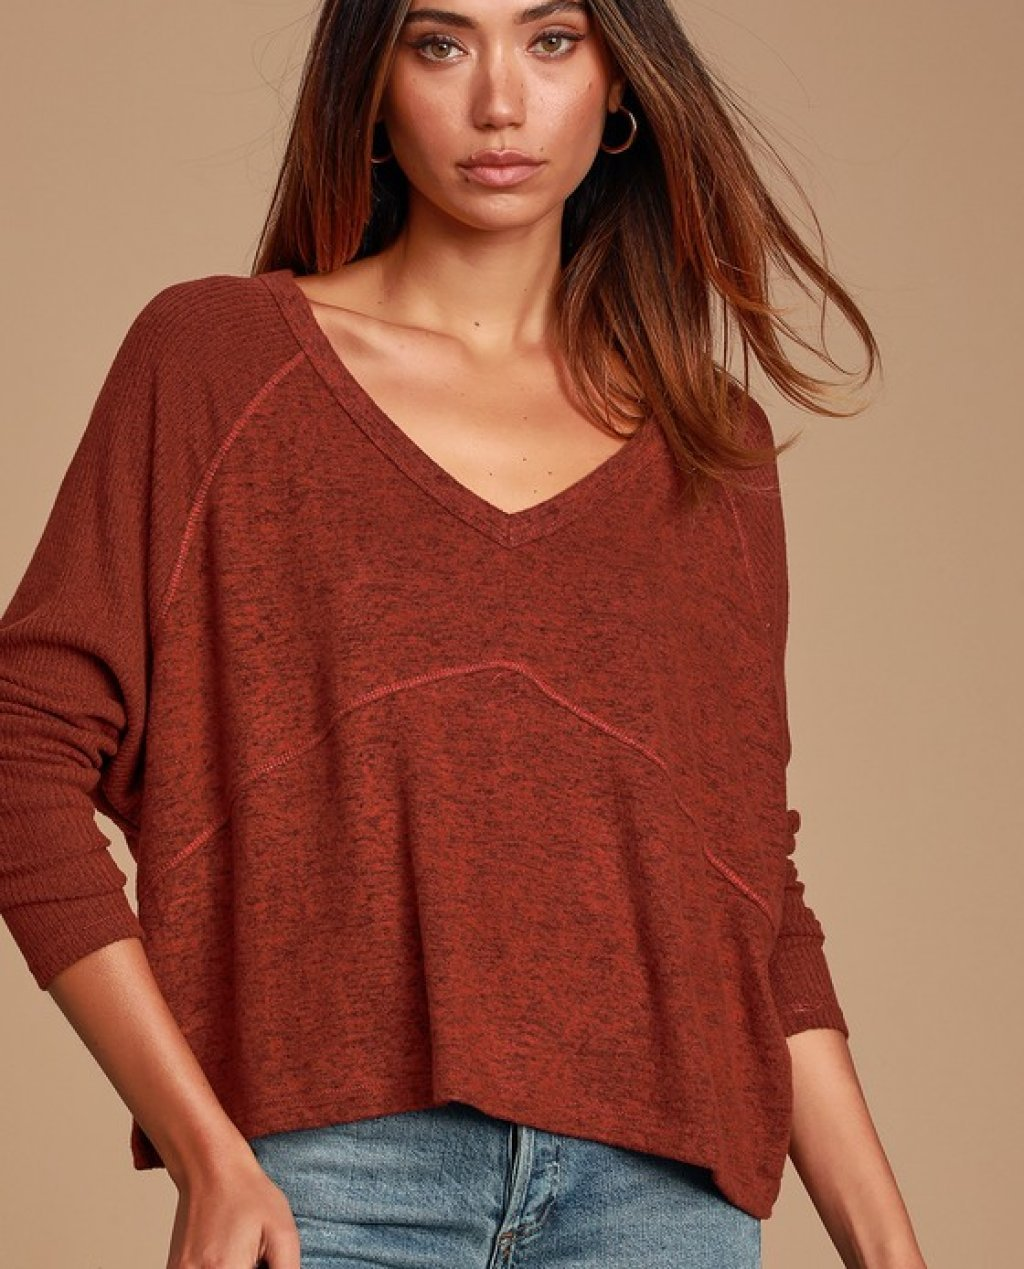 Cozy Central Rust Orange Ribbed Sweater Top